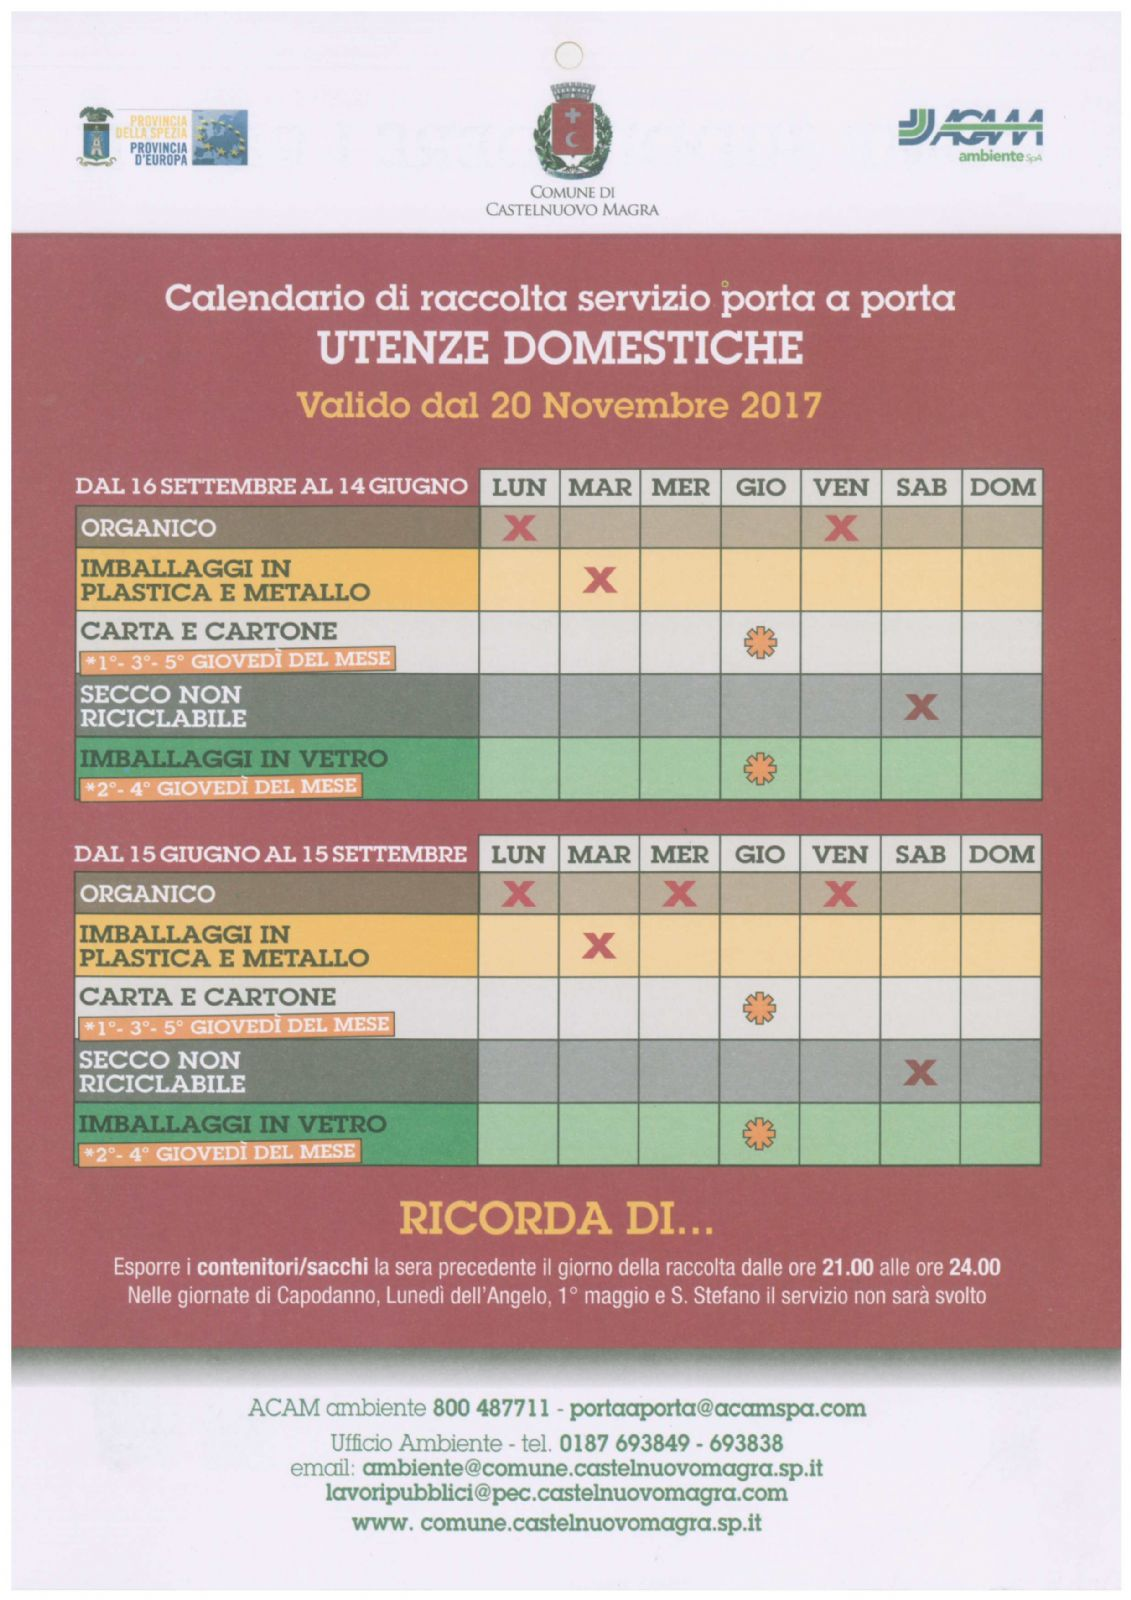 Nuovo Calendario.Nuovo Calendario Raccolta Differenziata Utenze Domestiche